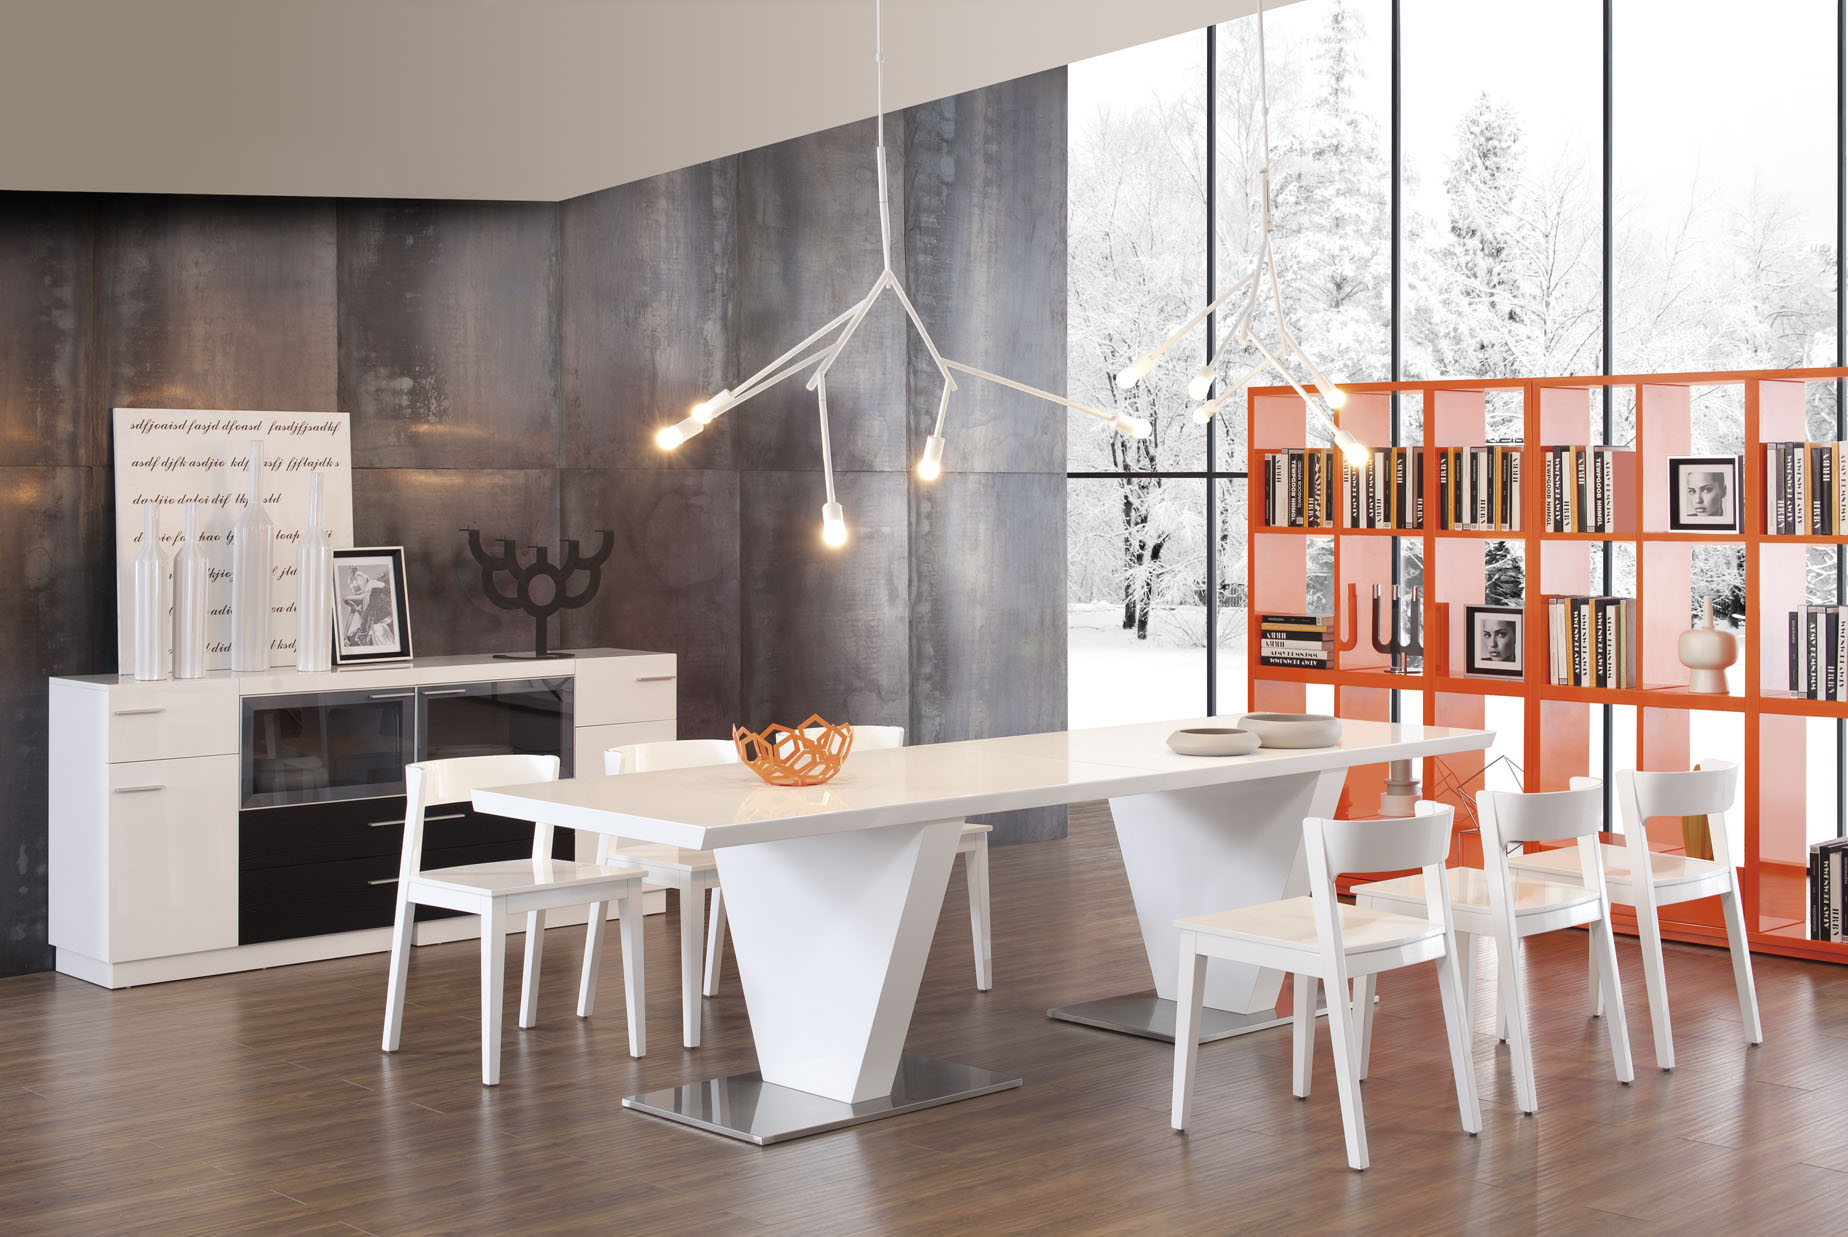 Dining Room Furniture Ideas For A Small Space